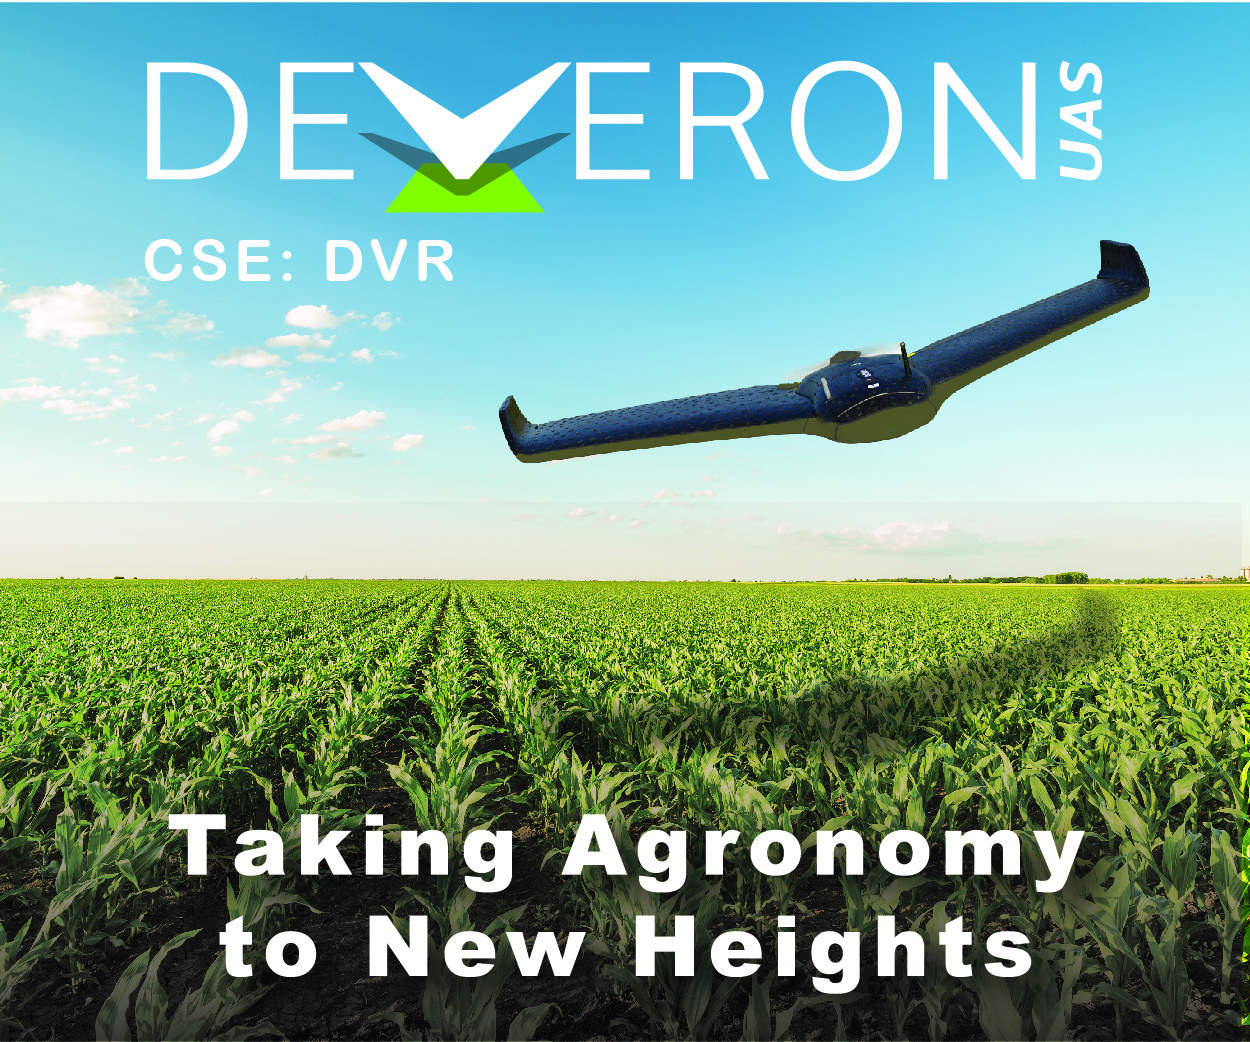 Commercial Drones FM Podcast - Deveron UAS